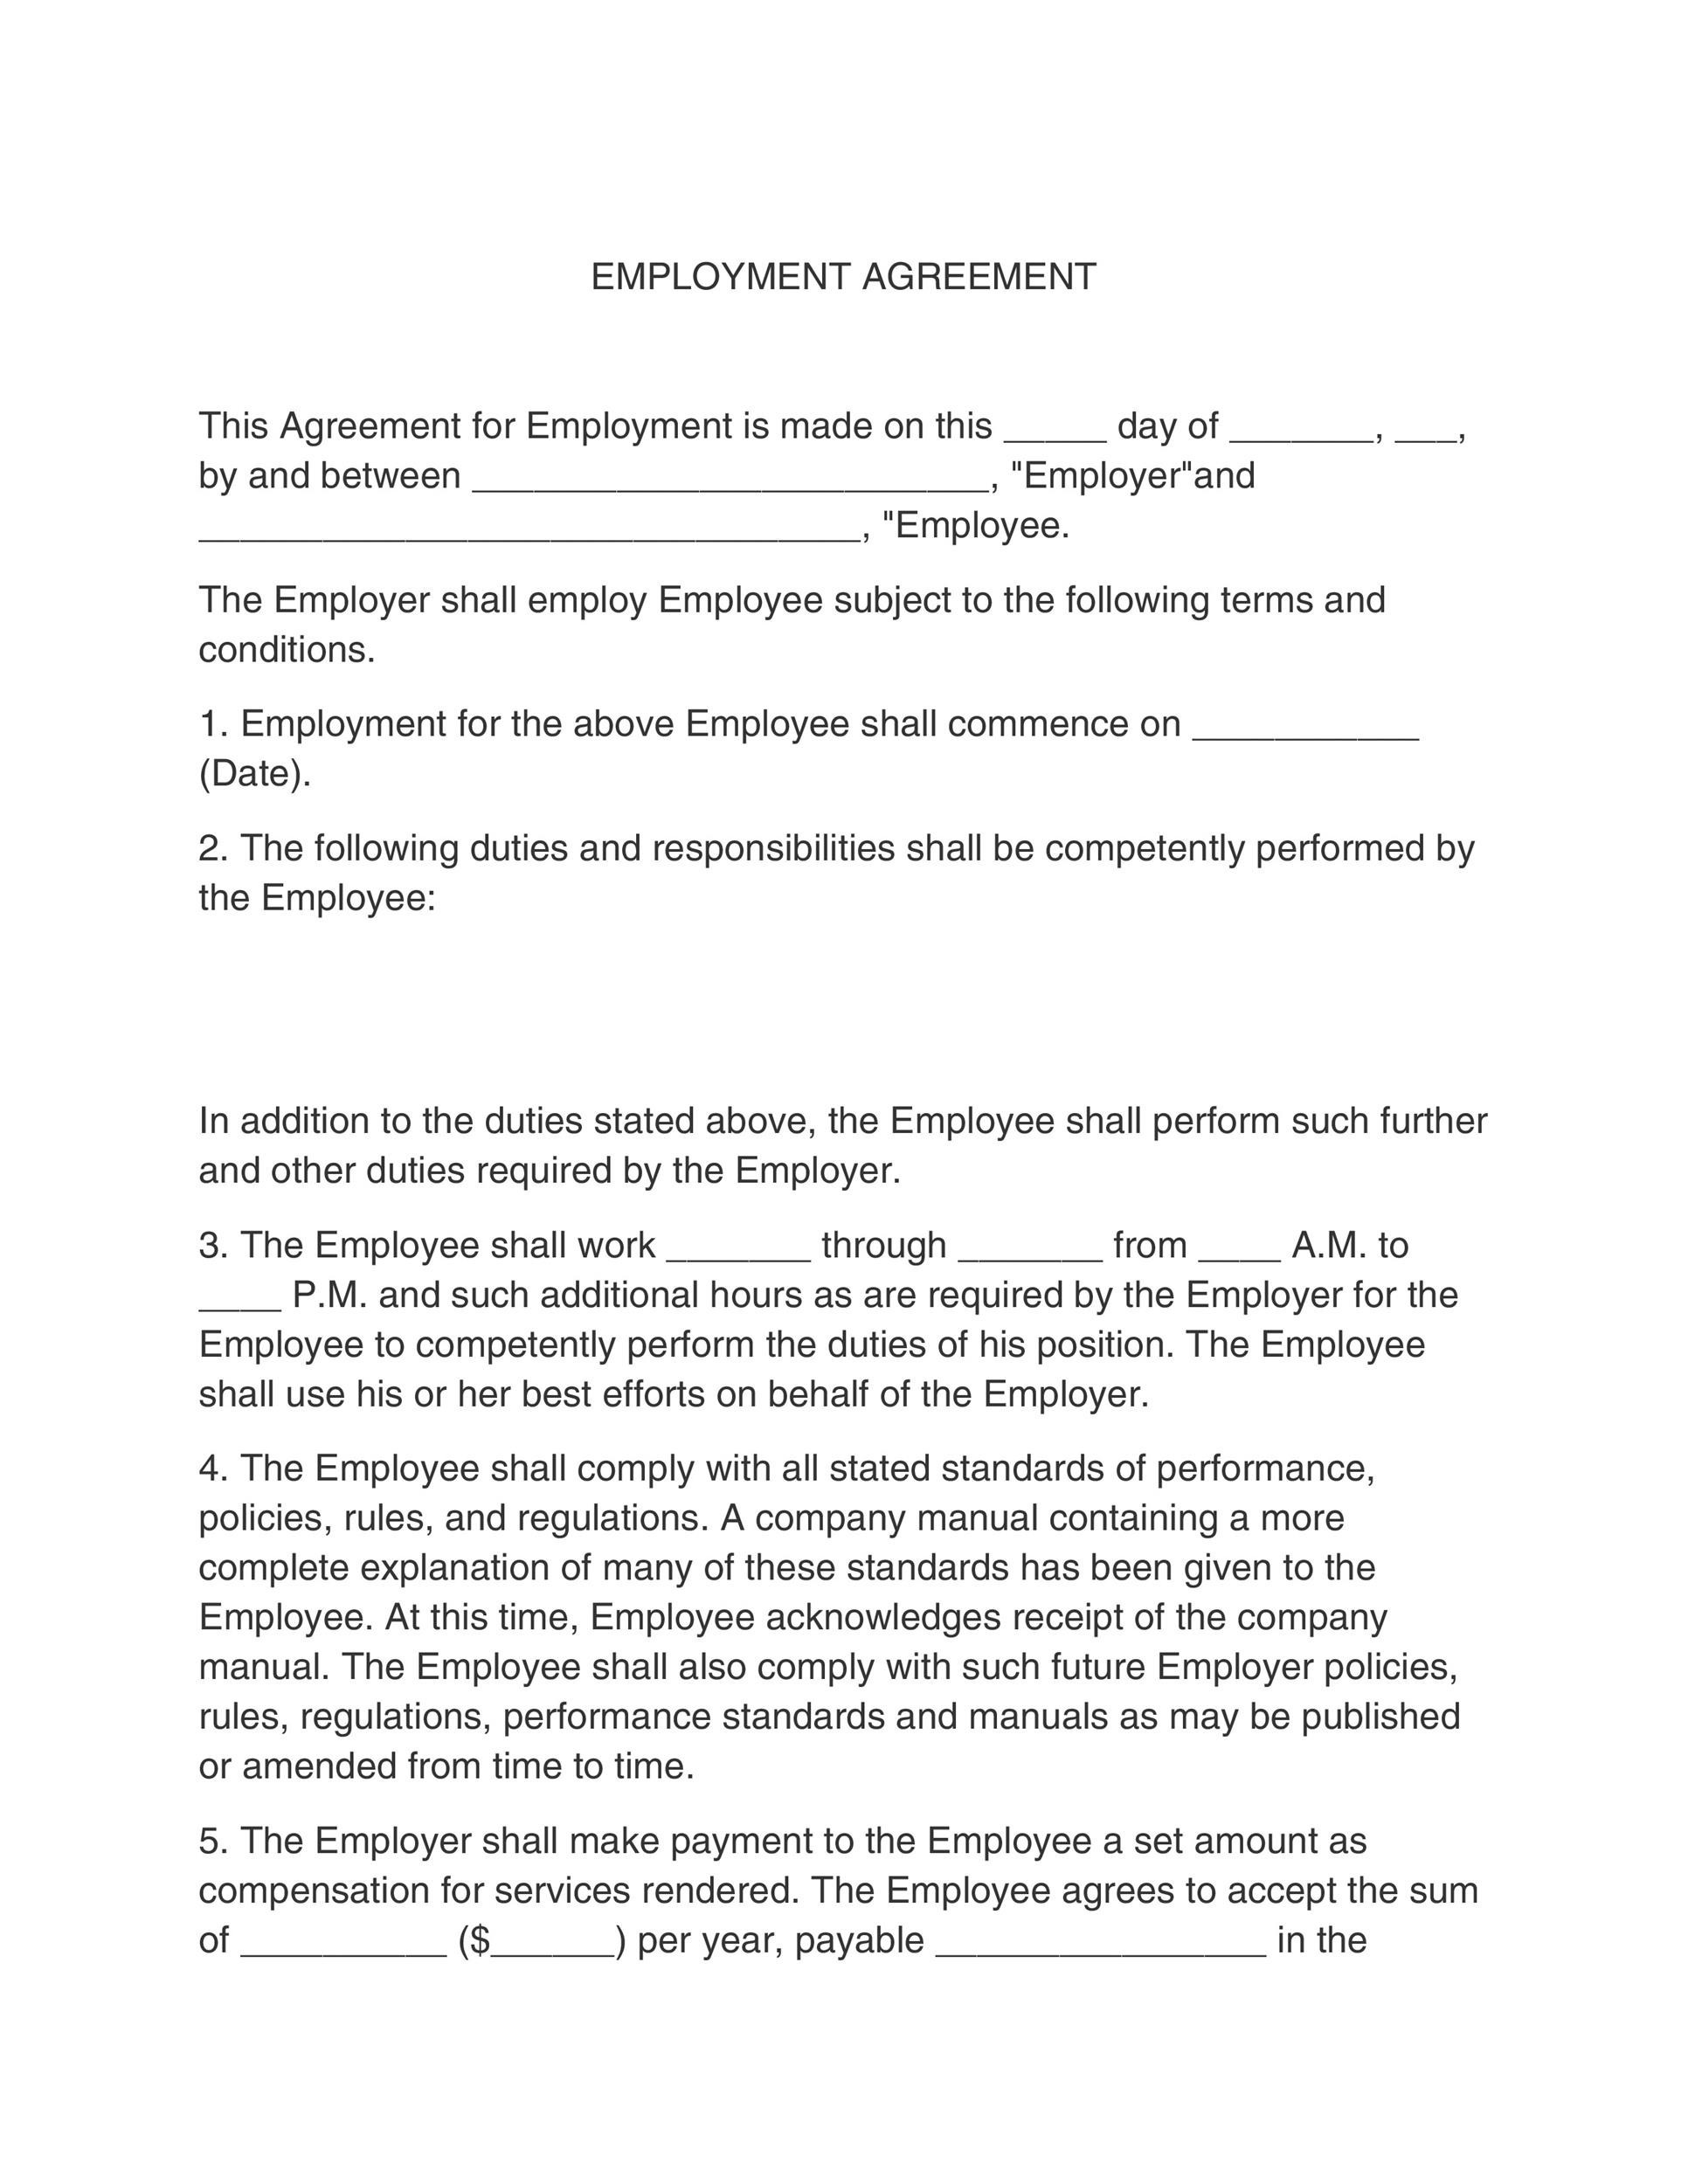 Casual Employment Agreement. Labor Code Of The Philippines Book 6